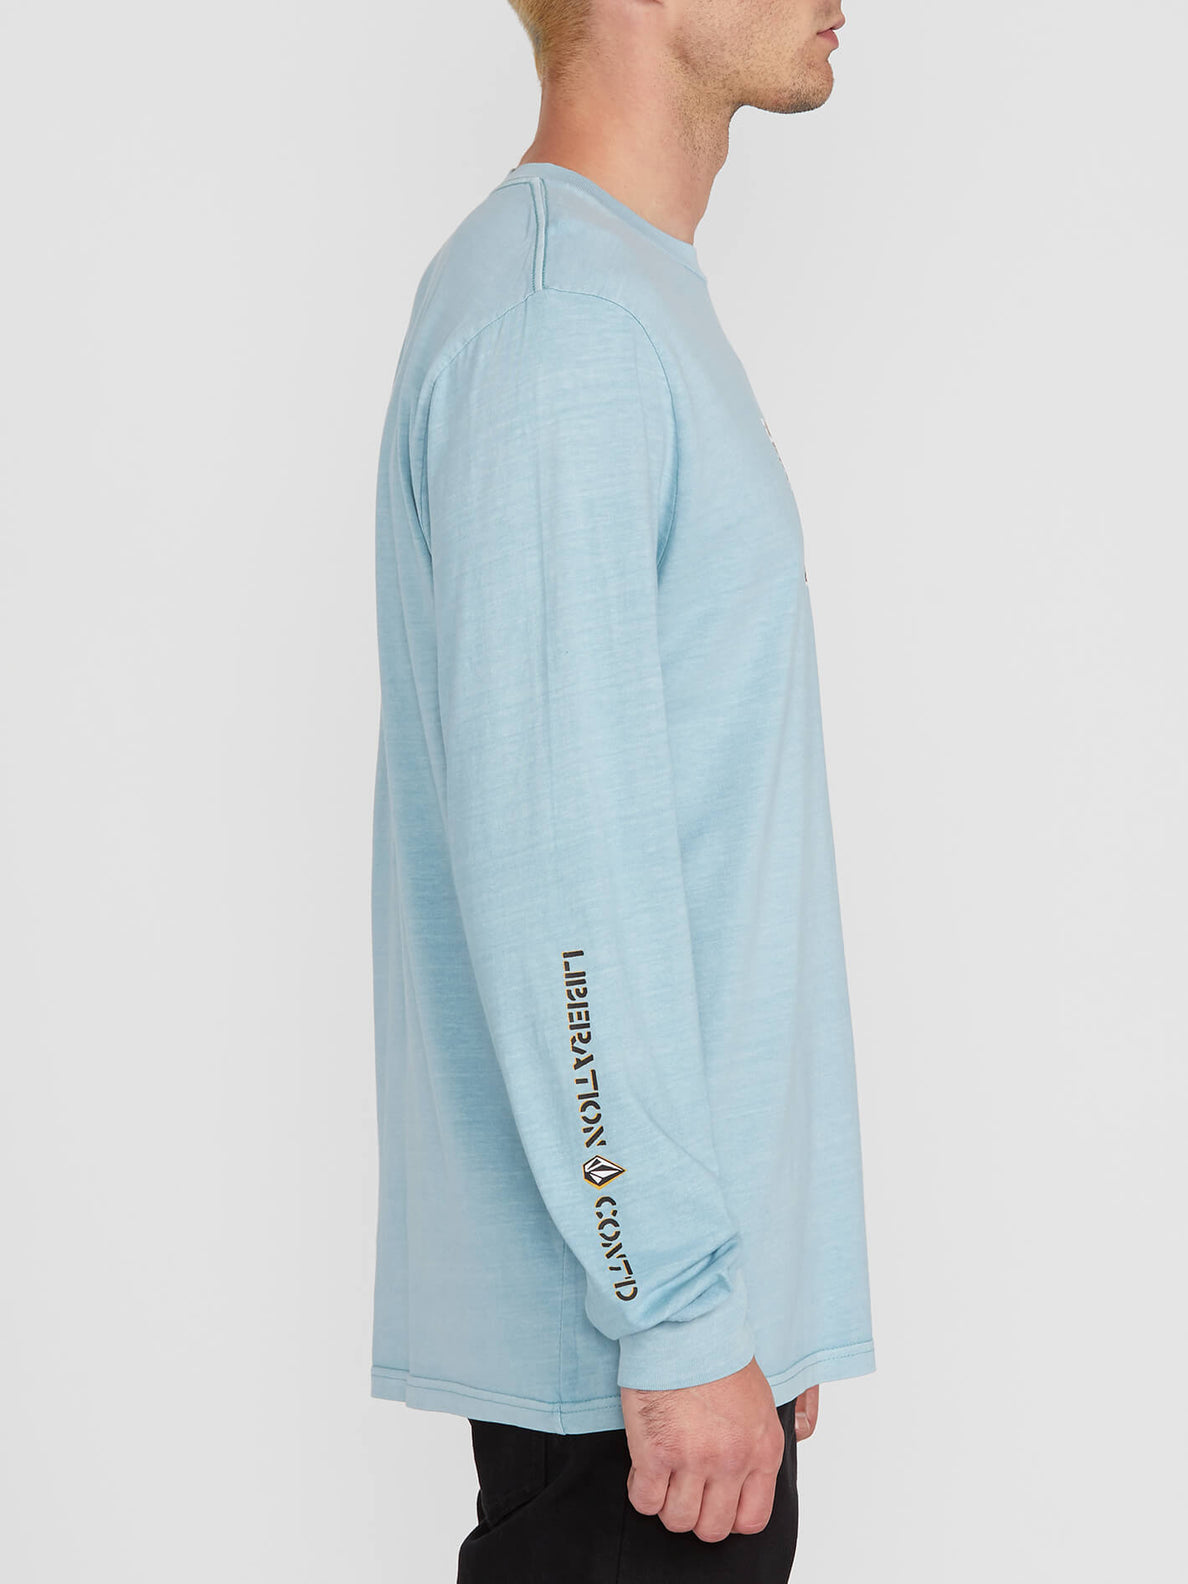 Cj Collins L/s Tee Cool Blue (A3612001_CLU) [1]